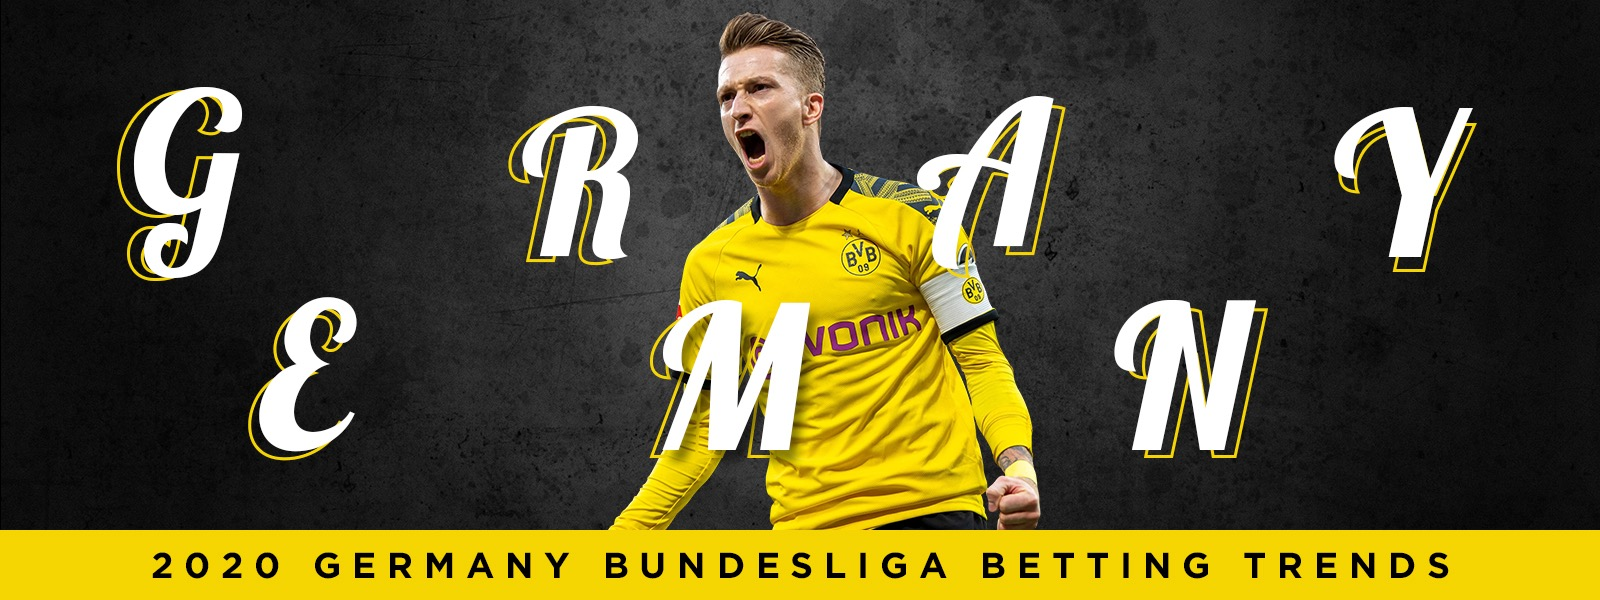 2020 Germany Bundesliga Betting Trends